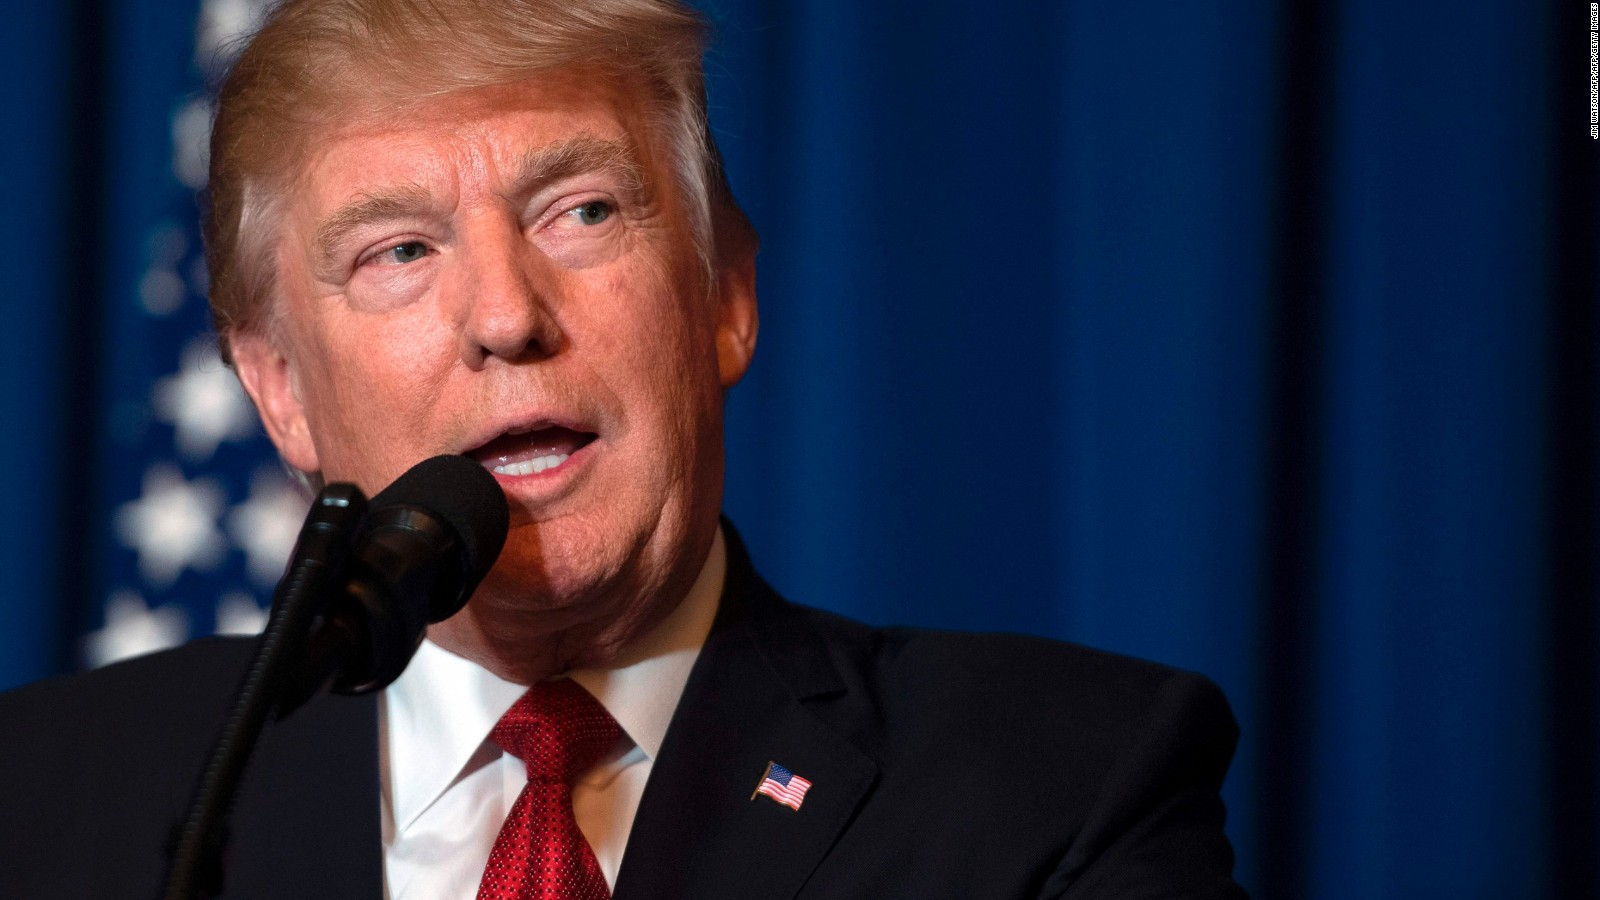 Trump's privilege about presidential power gets pushback across political spectrum with total authority